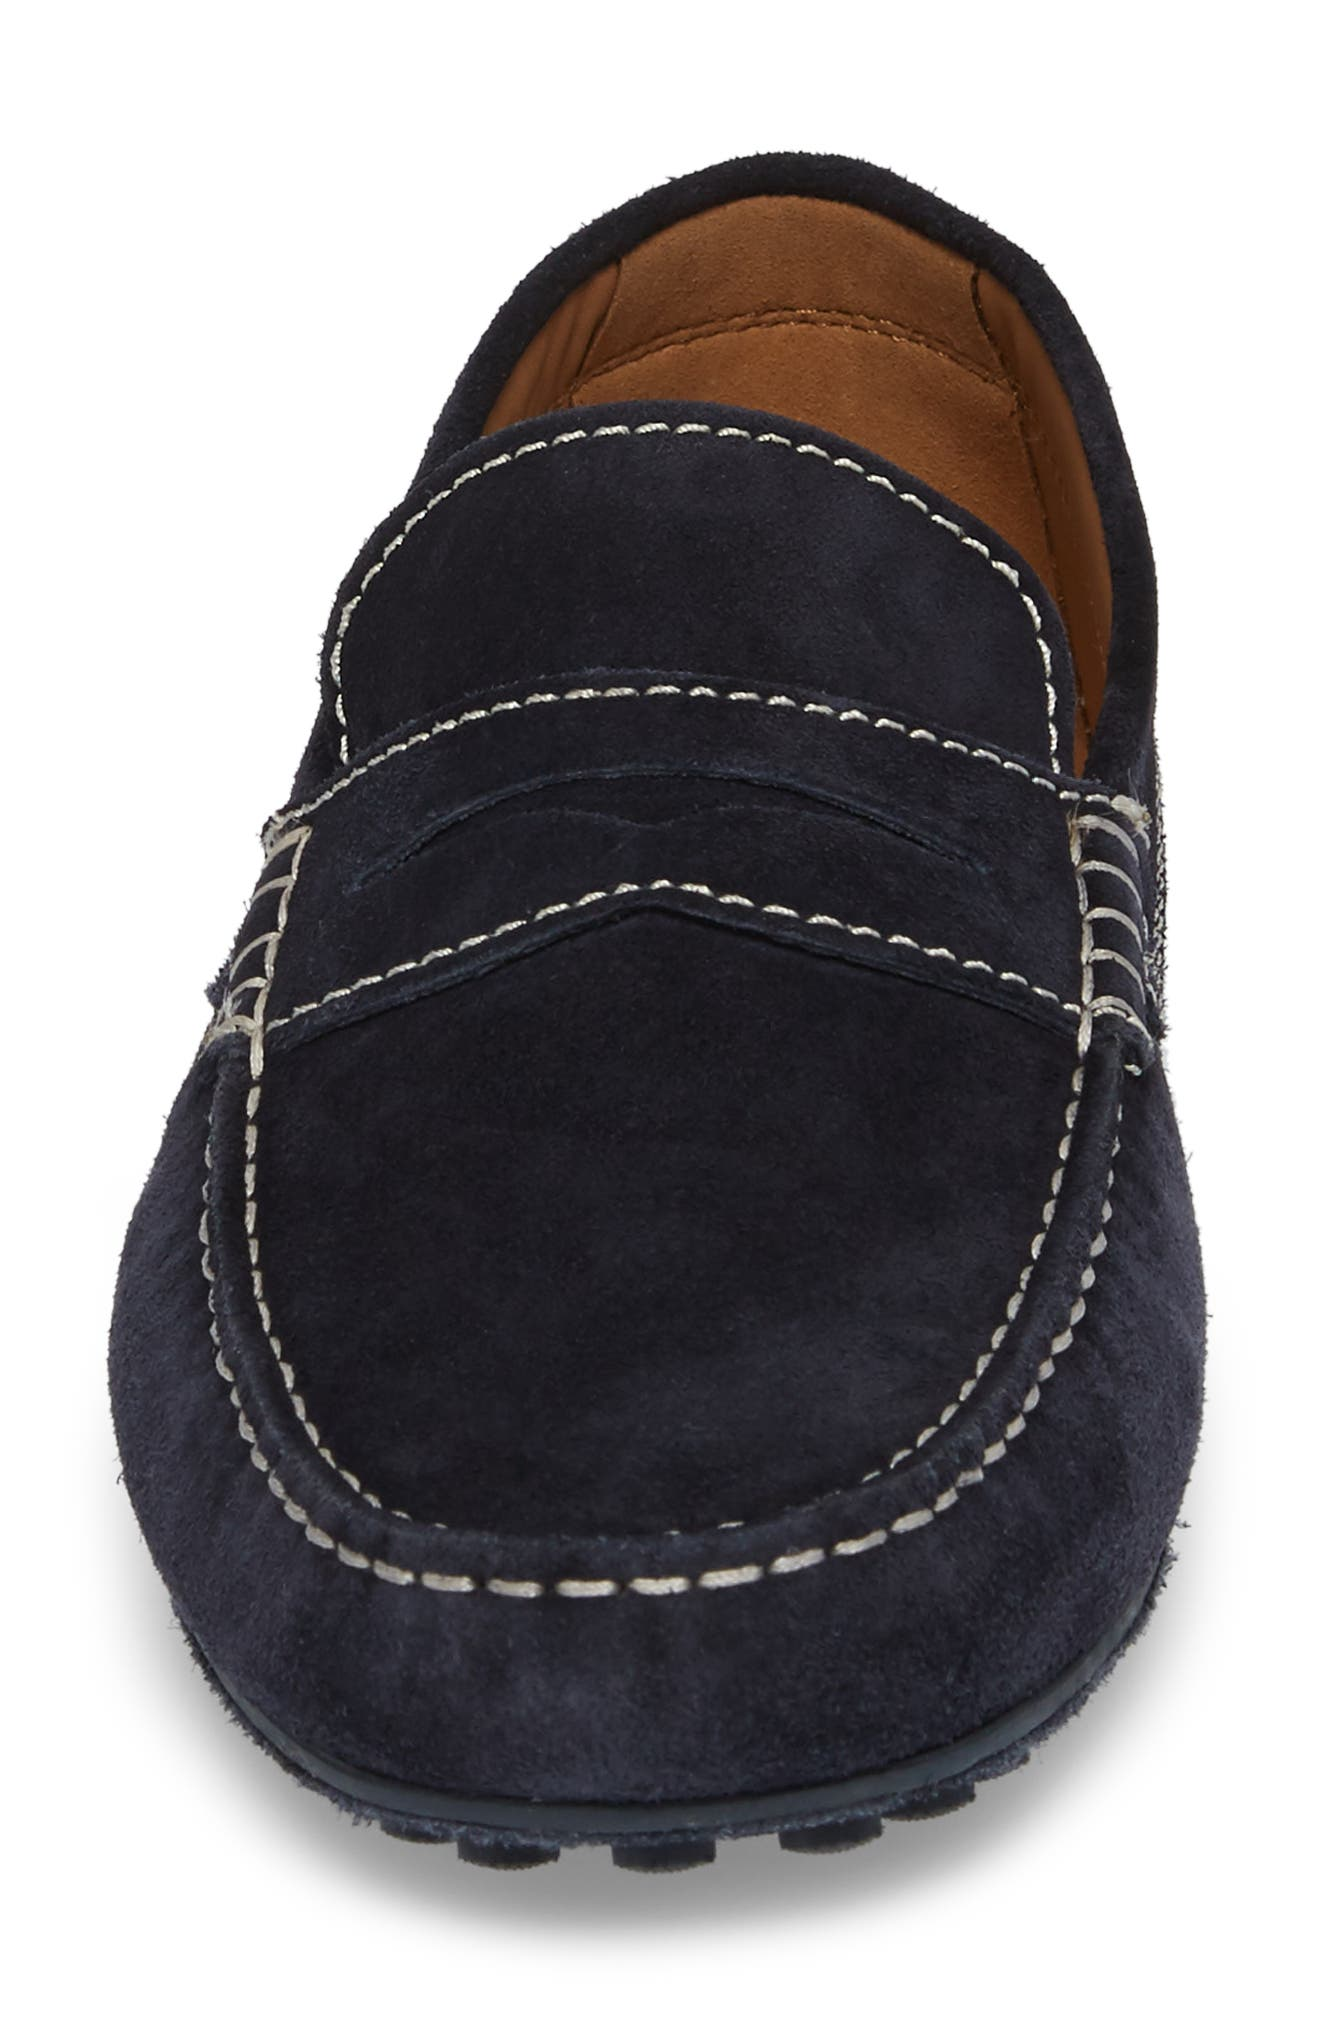 ROBERT TALBOTT,                             Penny Loafer,                             Alternate thumbnail 4, color,                             NAVY